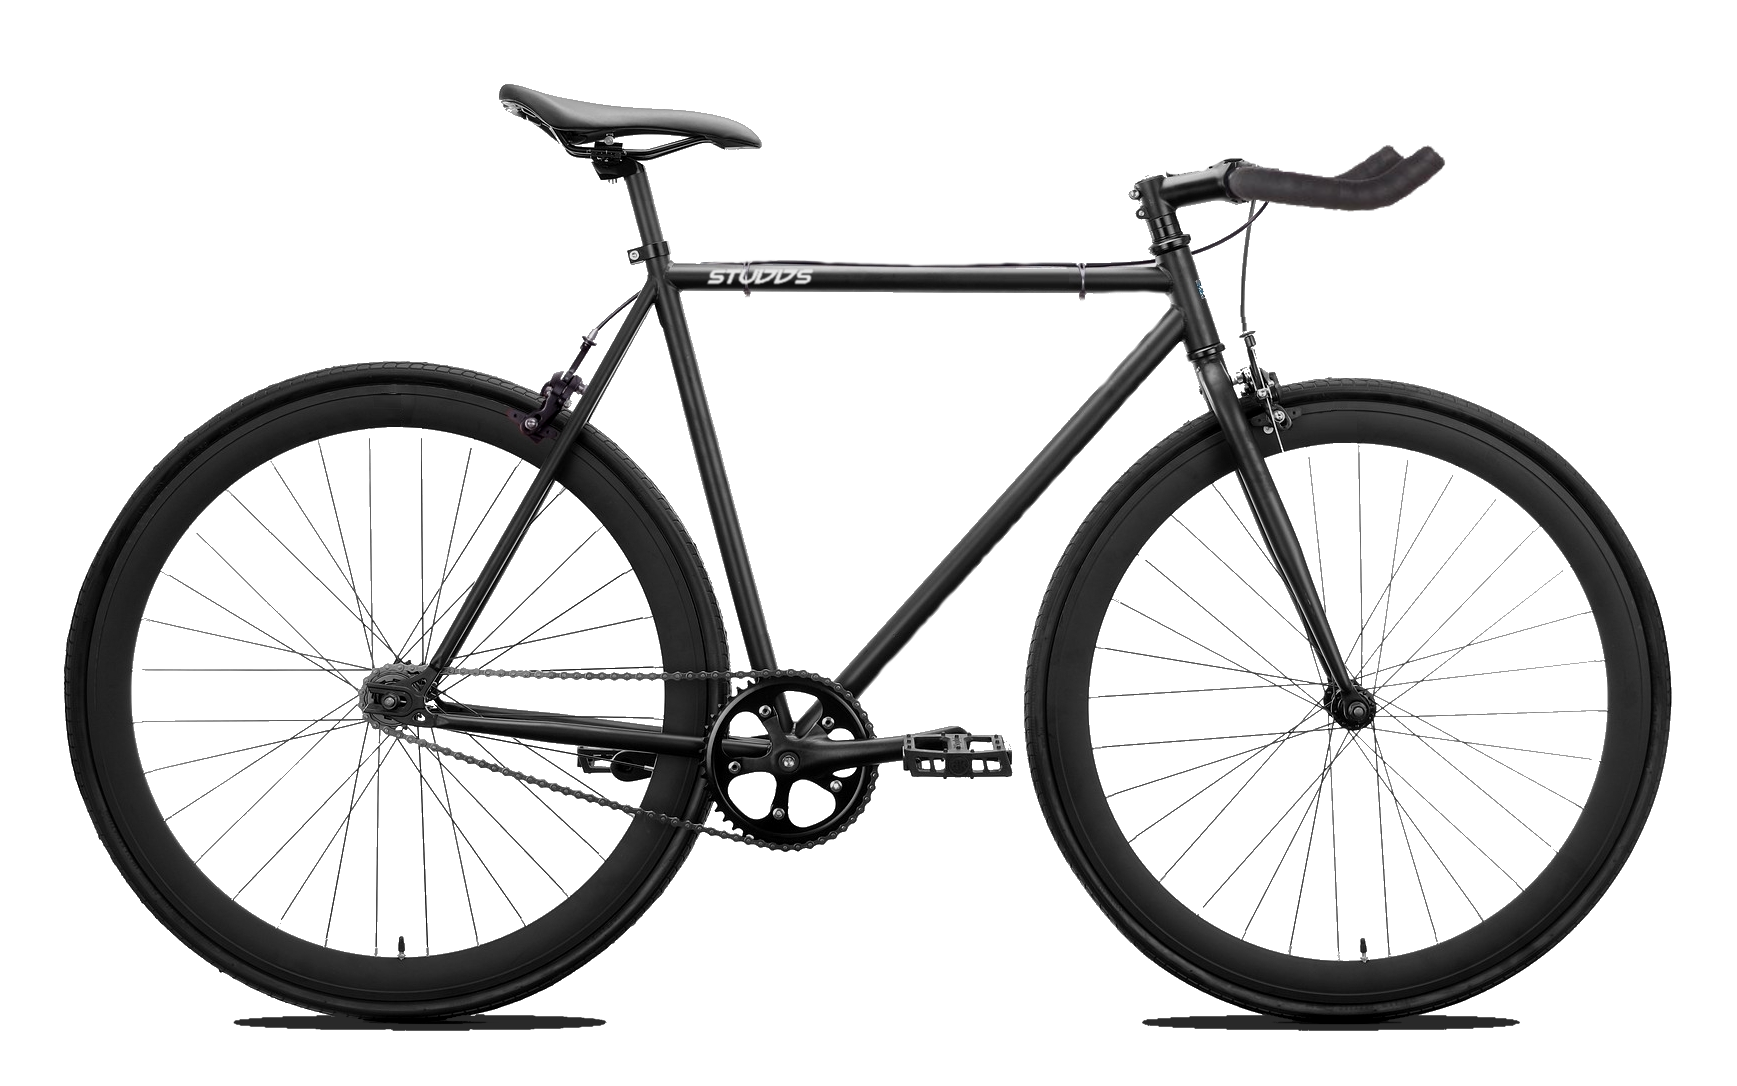 2019 Studds Matte Black Fixie/Singlespeed (Bull Horn Bar).